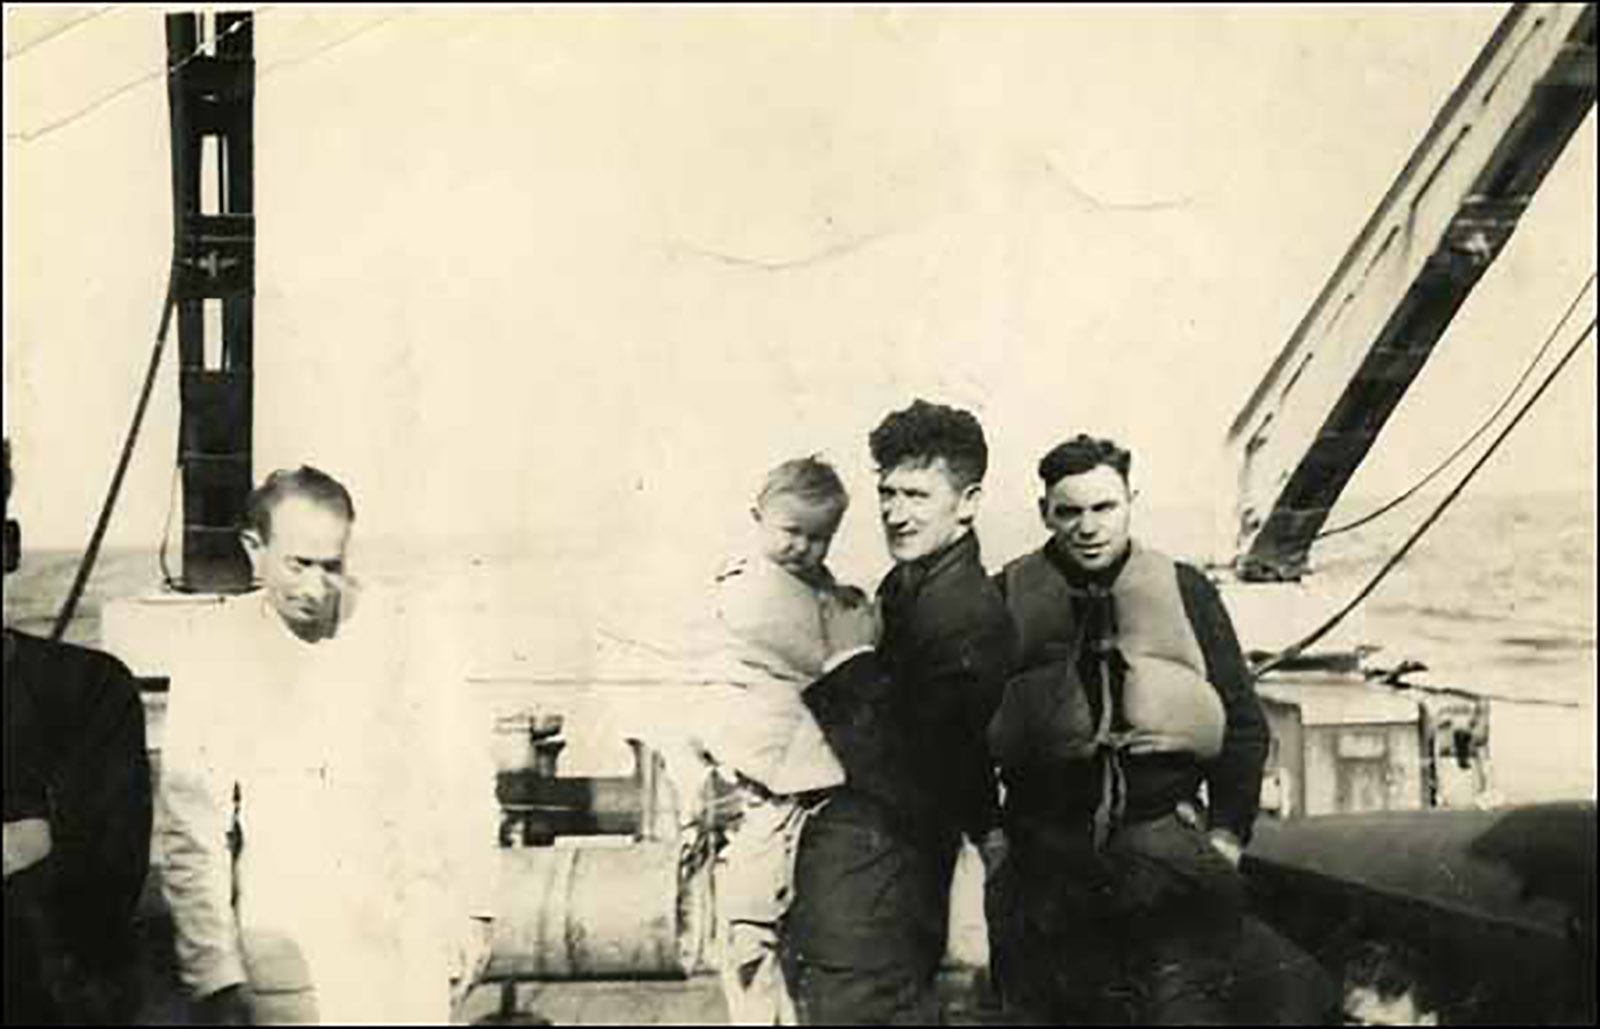 Unidentified survivors of SS Caribou, which sank off the coast of Newfoundland on October 14, 1942 after being torpedoed by a German submarine. Of the 237 people on board, only 101 survived. Photographer unknown. Reproduced by permission of Archives and Special Collections (Coll. 115 16.07.034), Queen Elizabeth II Library, Memorial University of Newfoundland, St. John's.